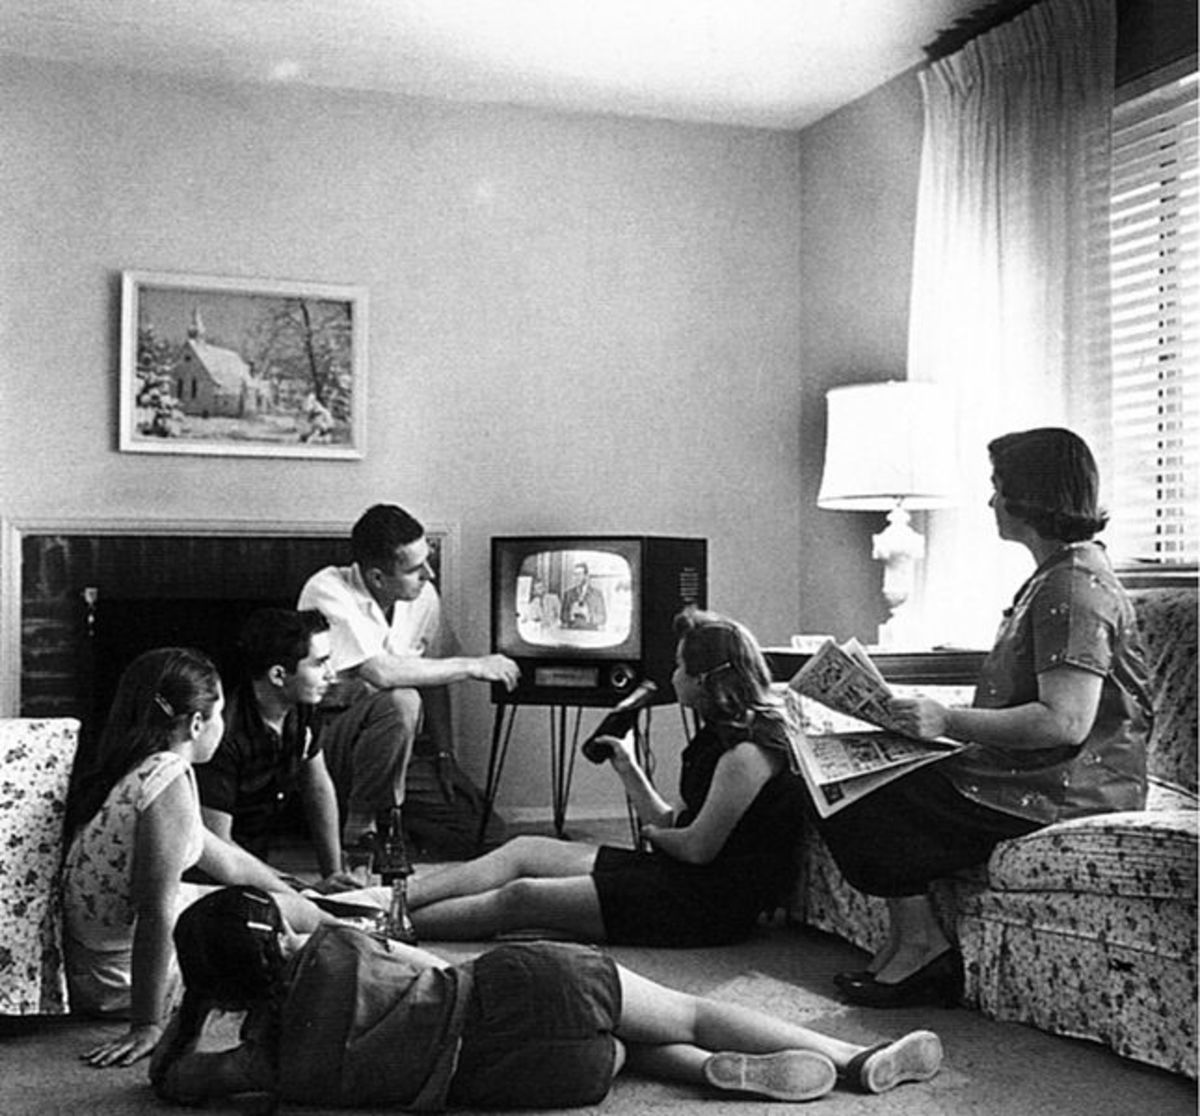 A family watching television together in 1958.